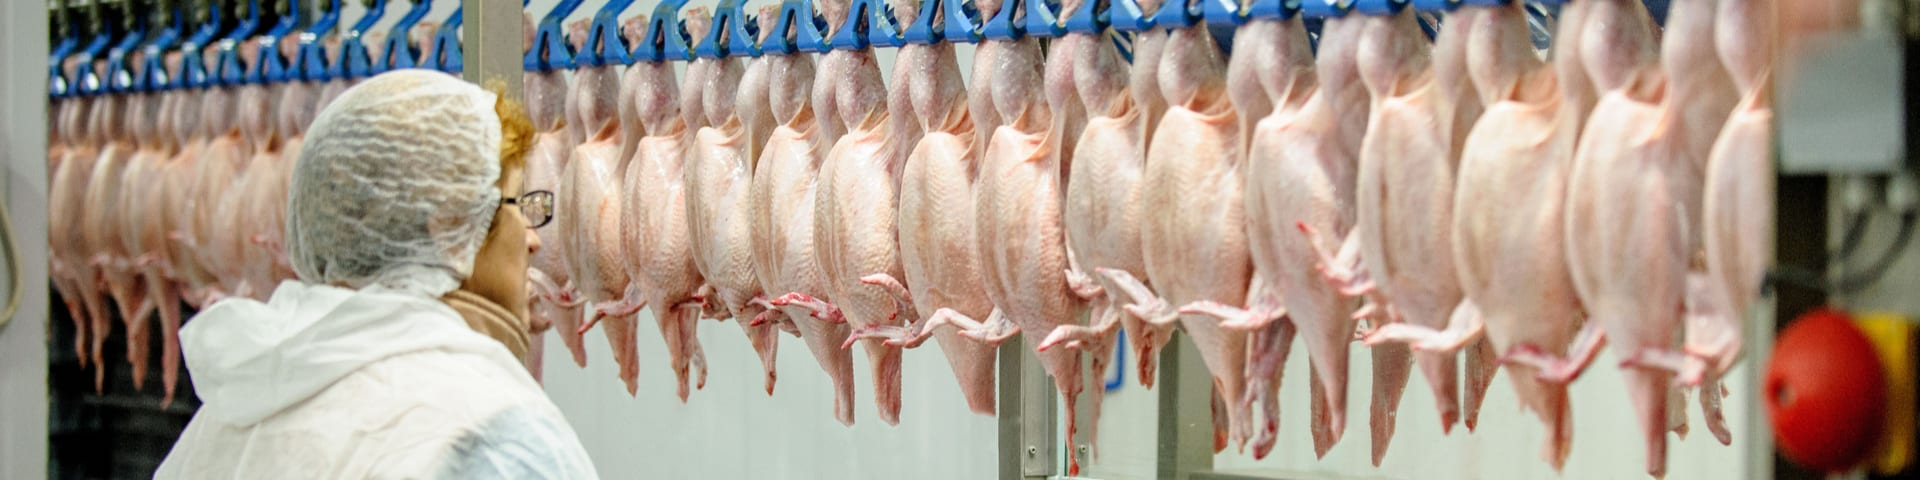 Worker Safety and Health: OSHA Targets Poultry Processing Due To High Injury and Illness Rates